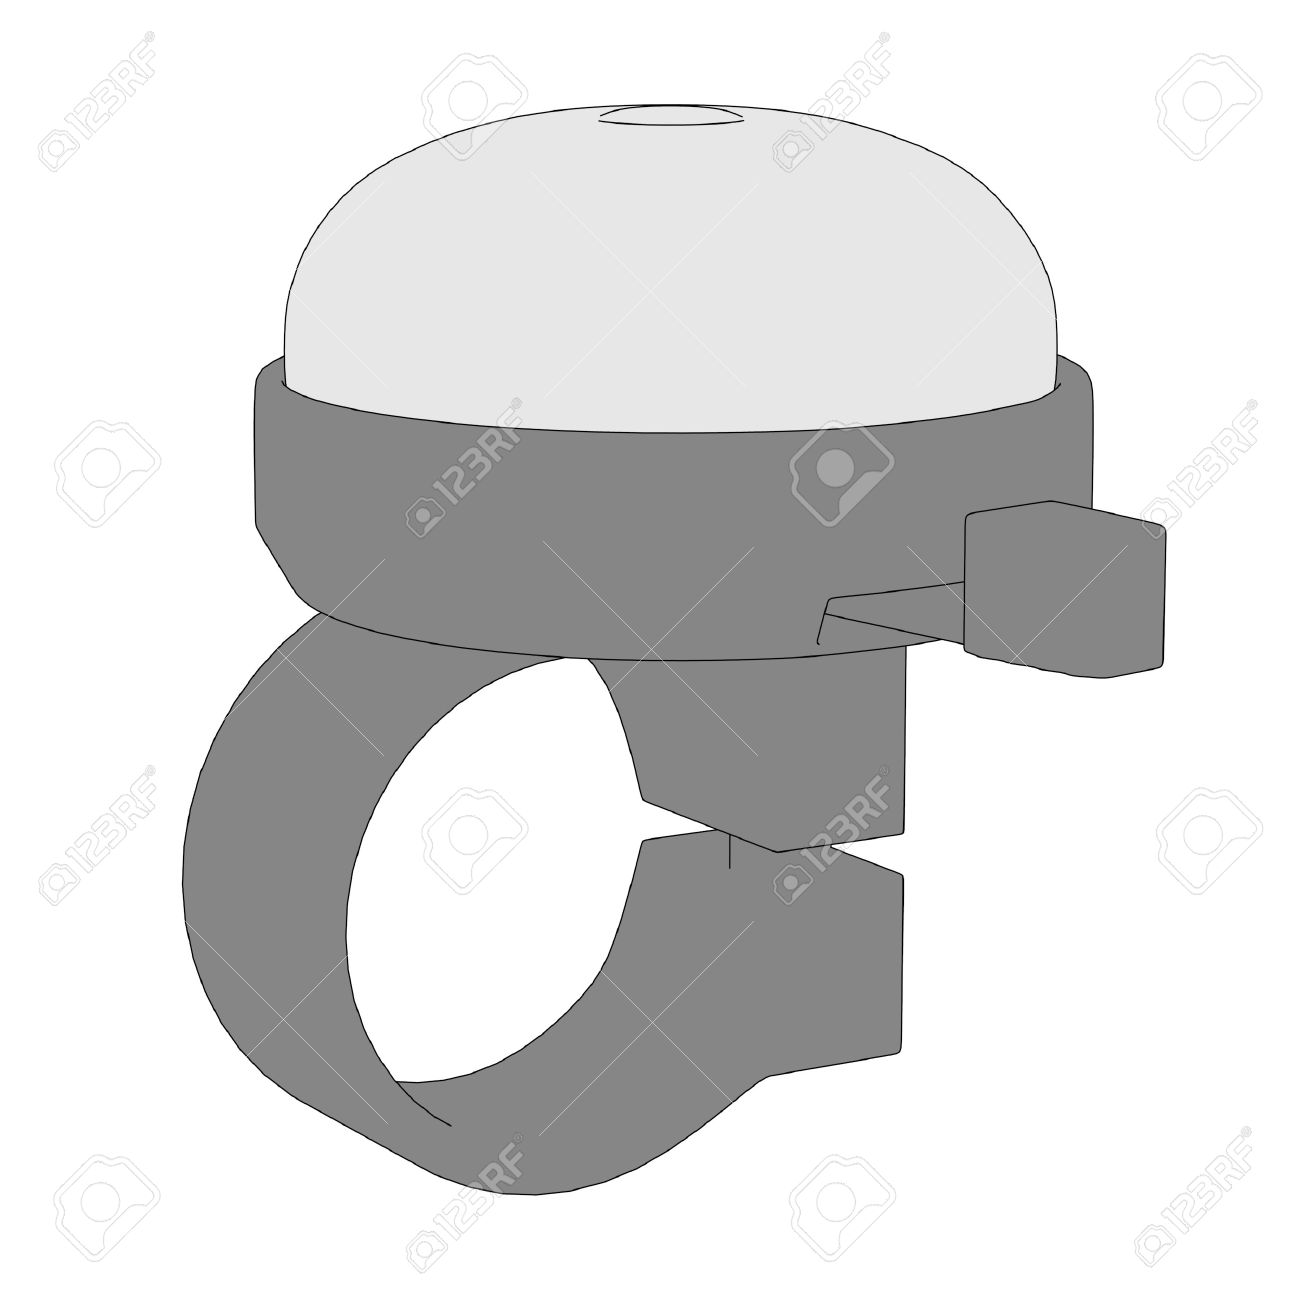 Cartoon Image Of Bicycle Bell Stock Photo, Picture And Royalty.